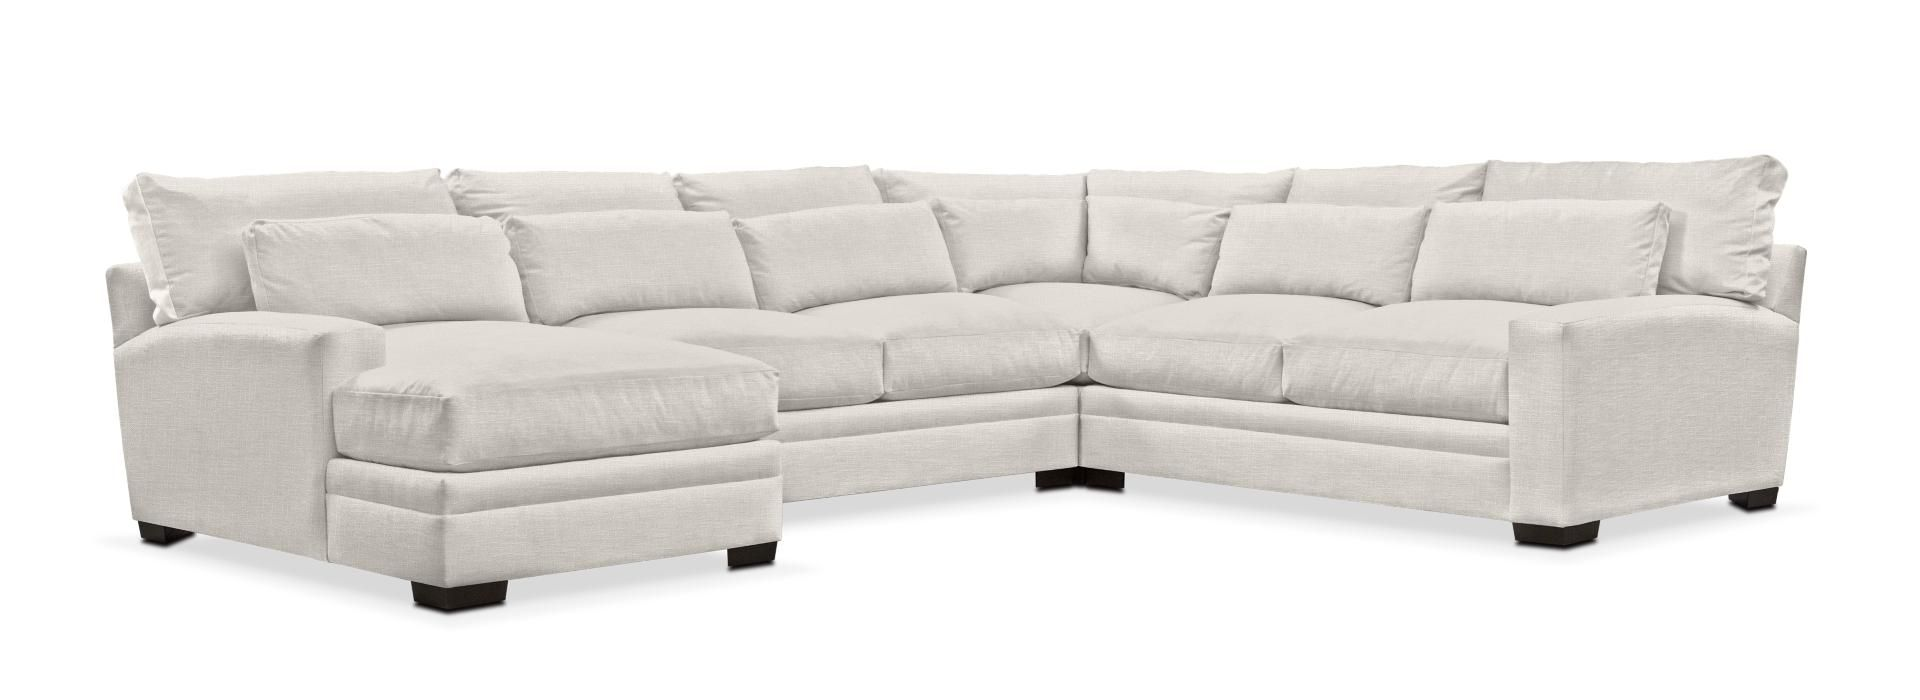 Pleasant Winston Cumulus 4 Piece Sectional Sofa With Left Facing Camellatalisay Diy Chair Ideas Camellatalisaycom